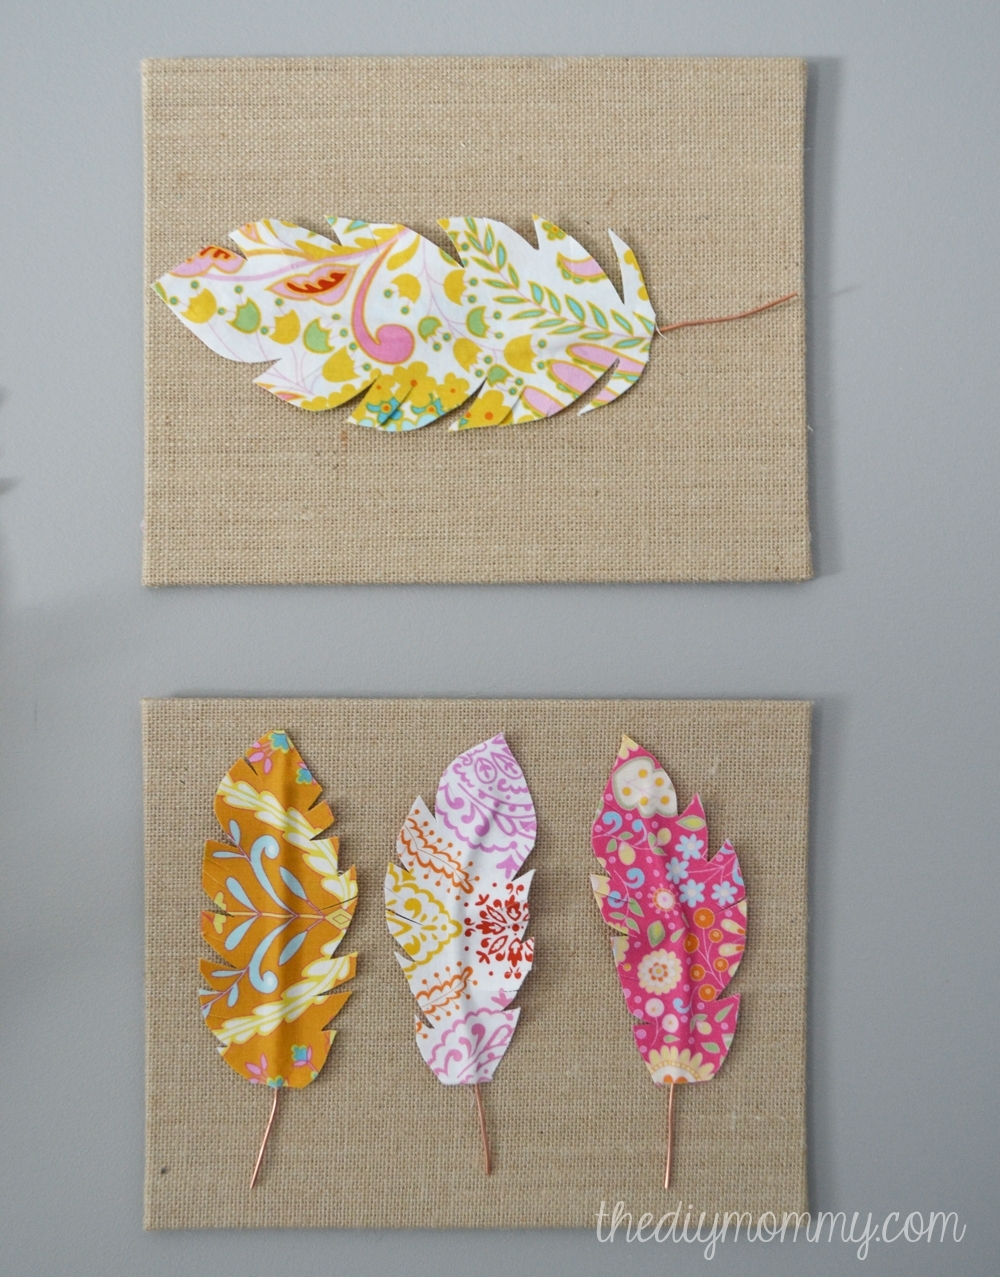 Make Fabric Feather Wall Art | The Diy Mommy Intended For Most Current Diy Fabric Canvas Wall Art (View 9 of 15)